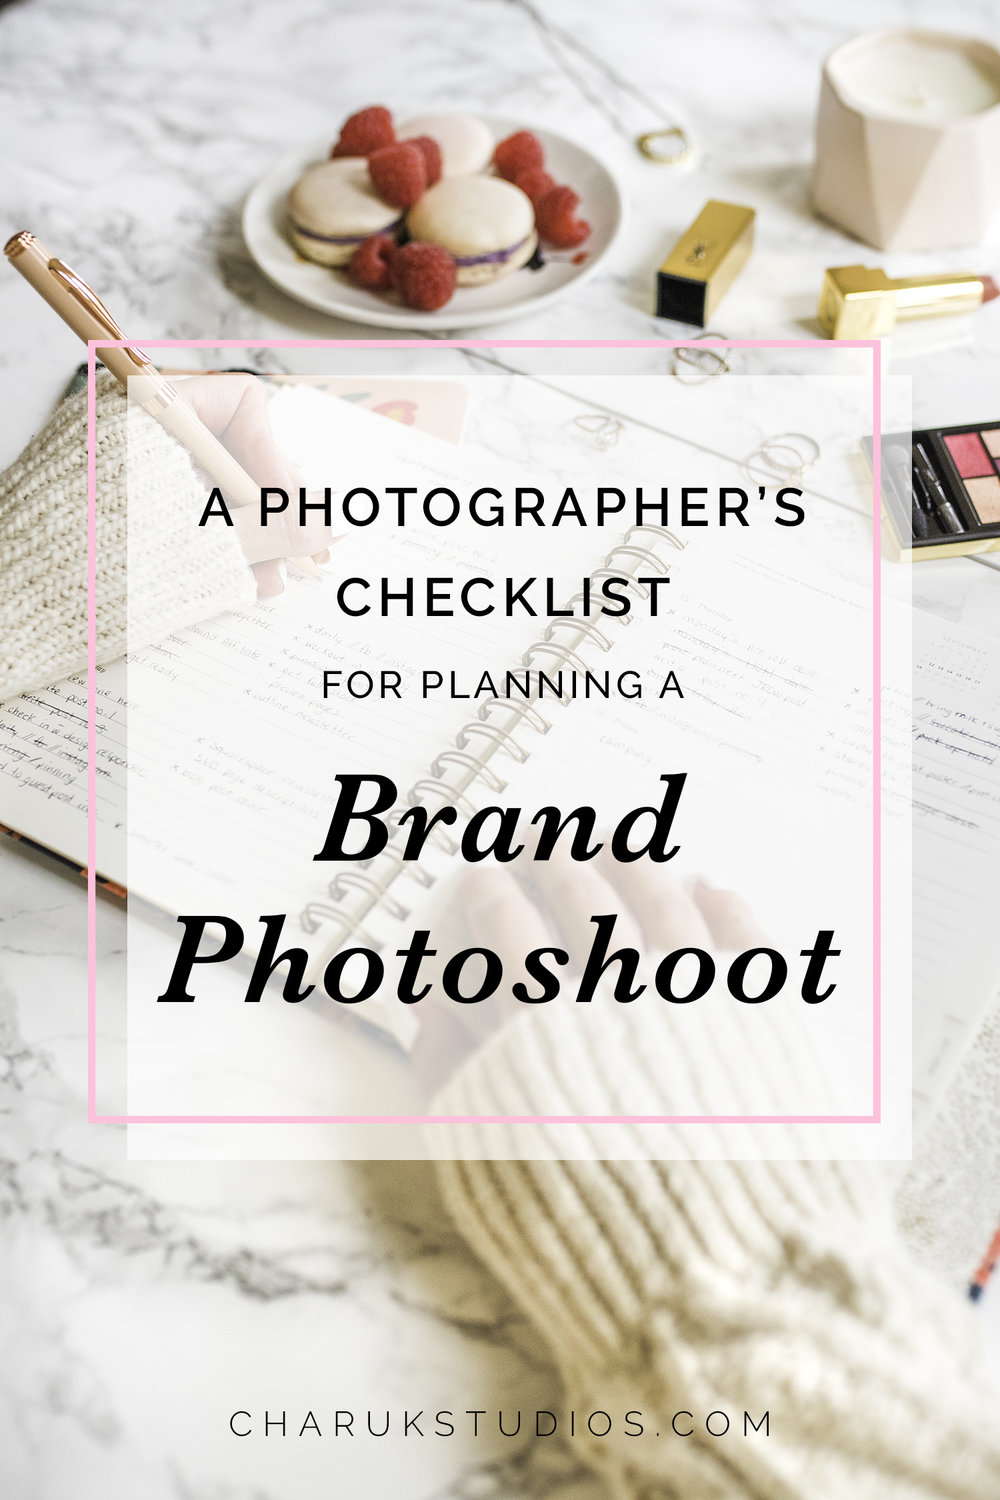 A Photographer's Checklist for Planning a Brand Photoshoot by Charuk Studios